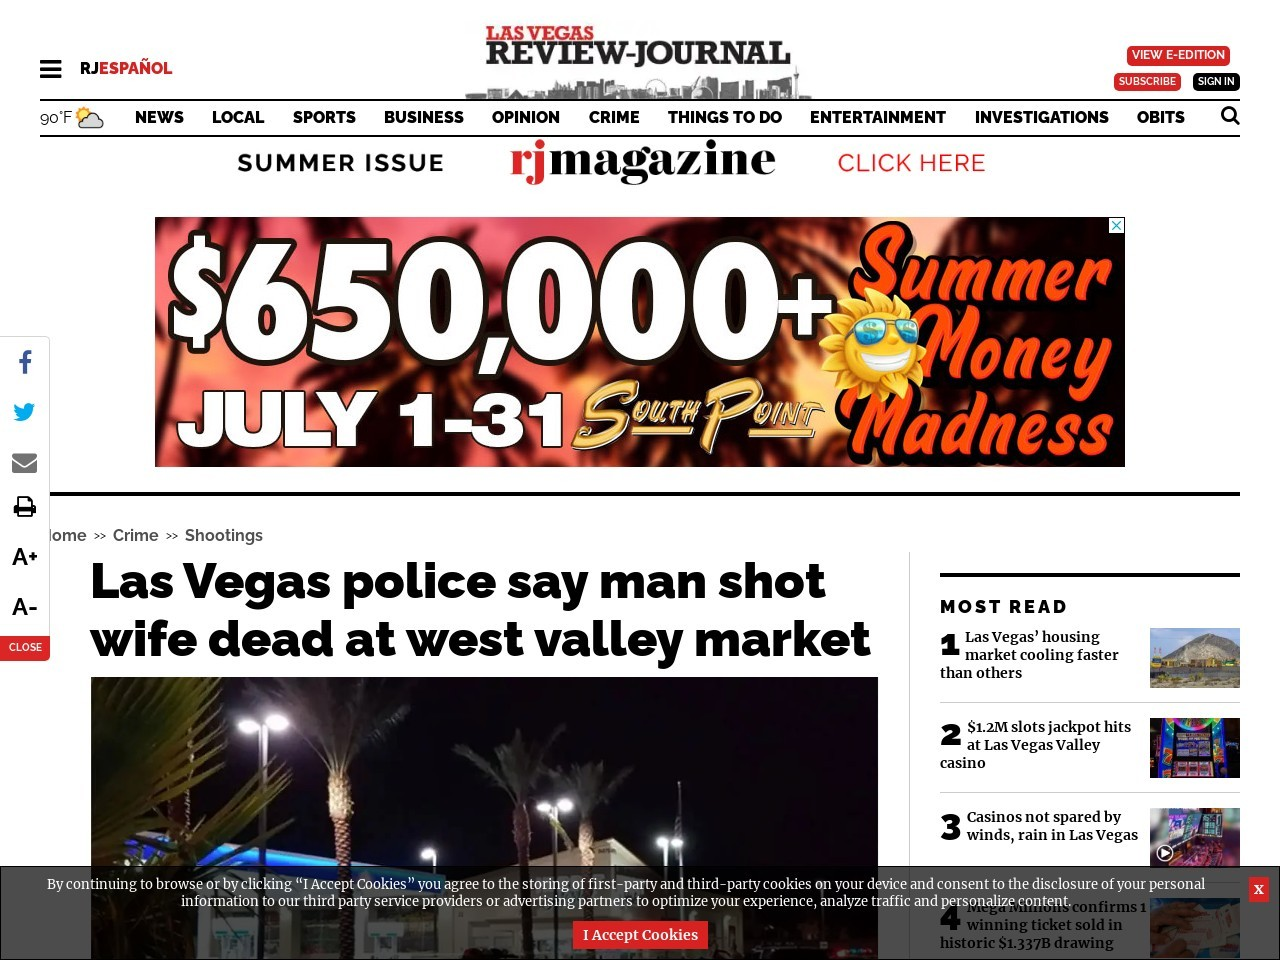 Las Vegas police say man shot wife dead at west valley market